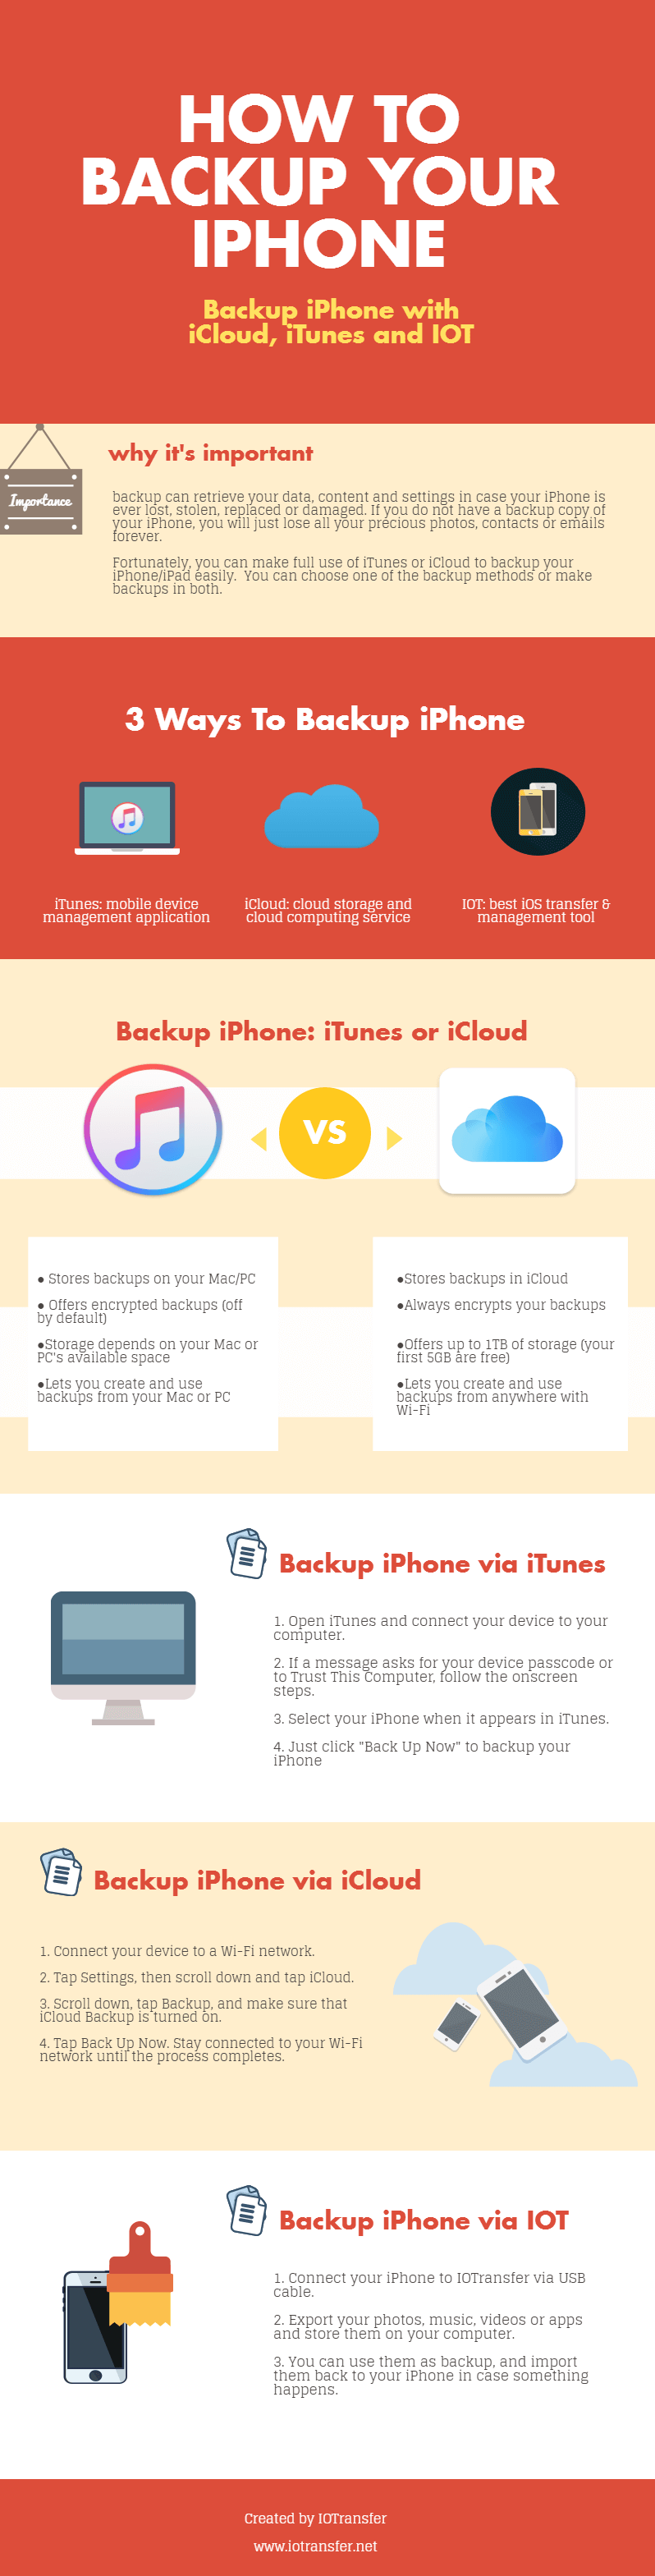 How to Backup Your iPhone Using iCloud, iTunes or IOT (iPhone 7, iPhone 8, iPhone 6)